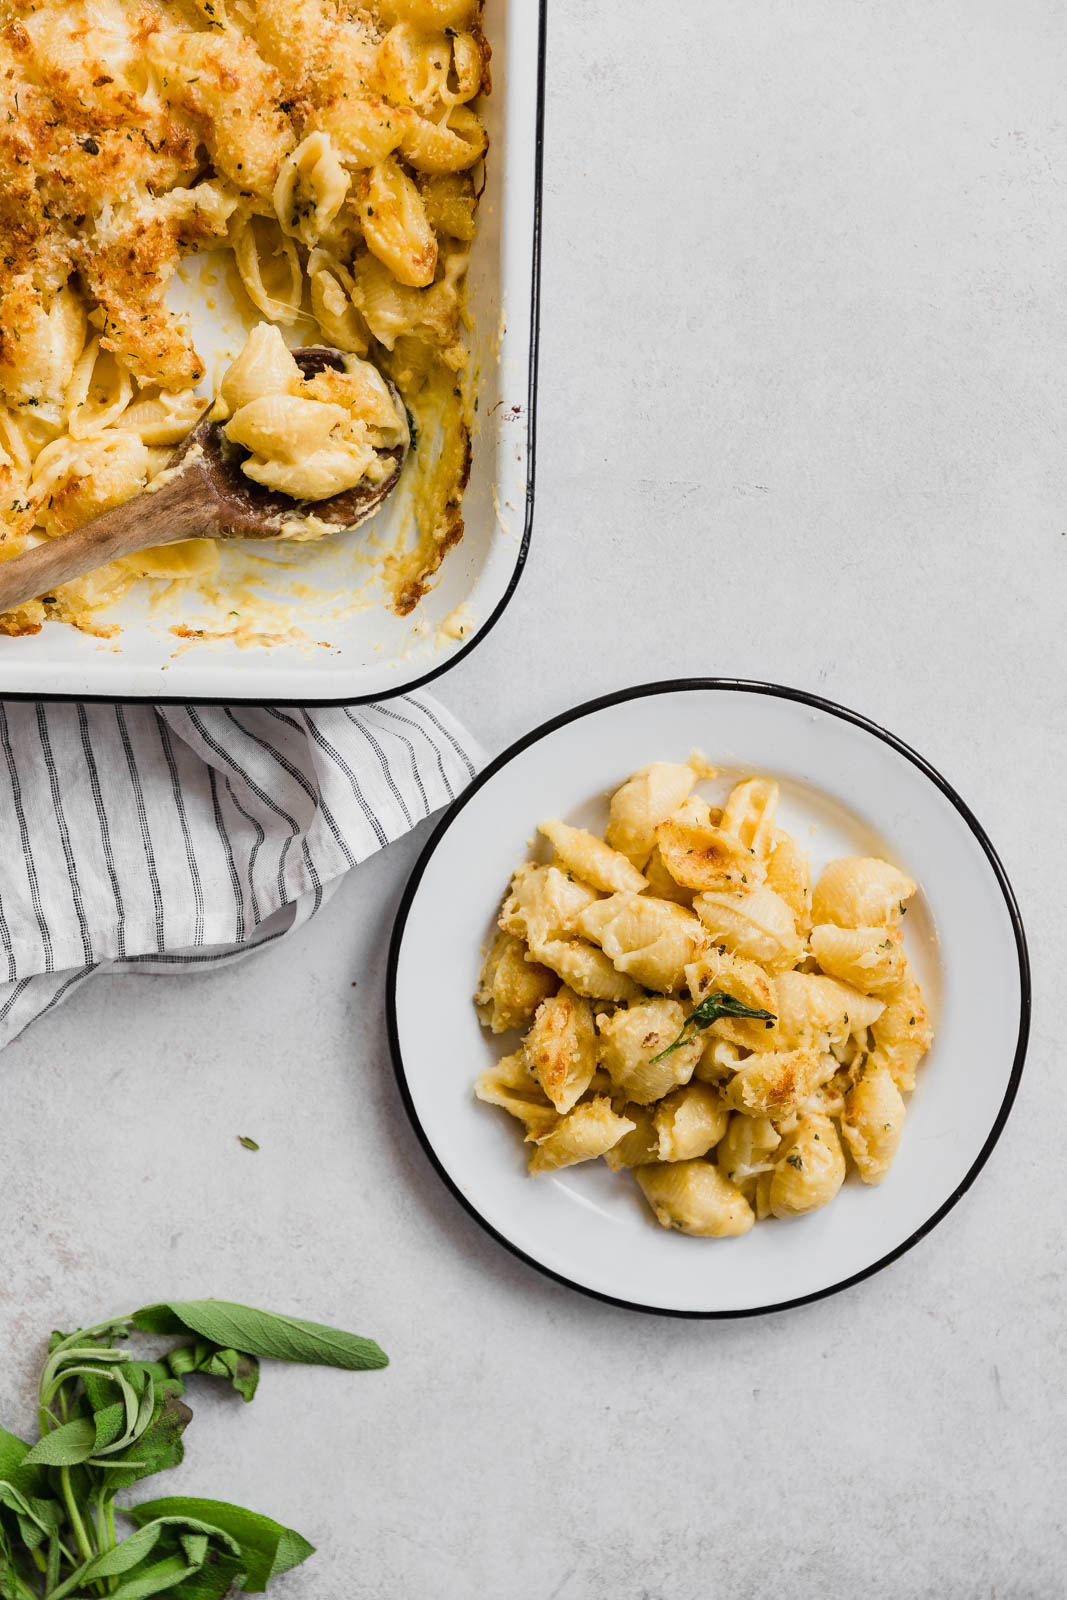 A healthier alternative bursting with flavor, this Butternut Squash Mac and Cheese is my new go-to fall recipe!